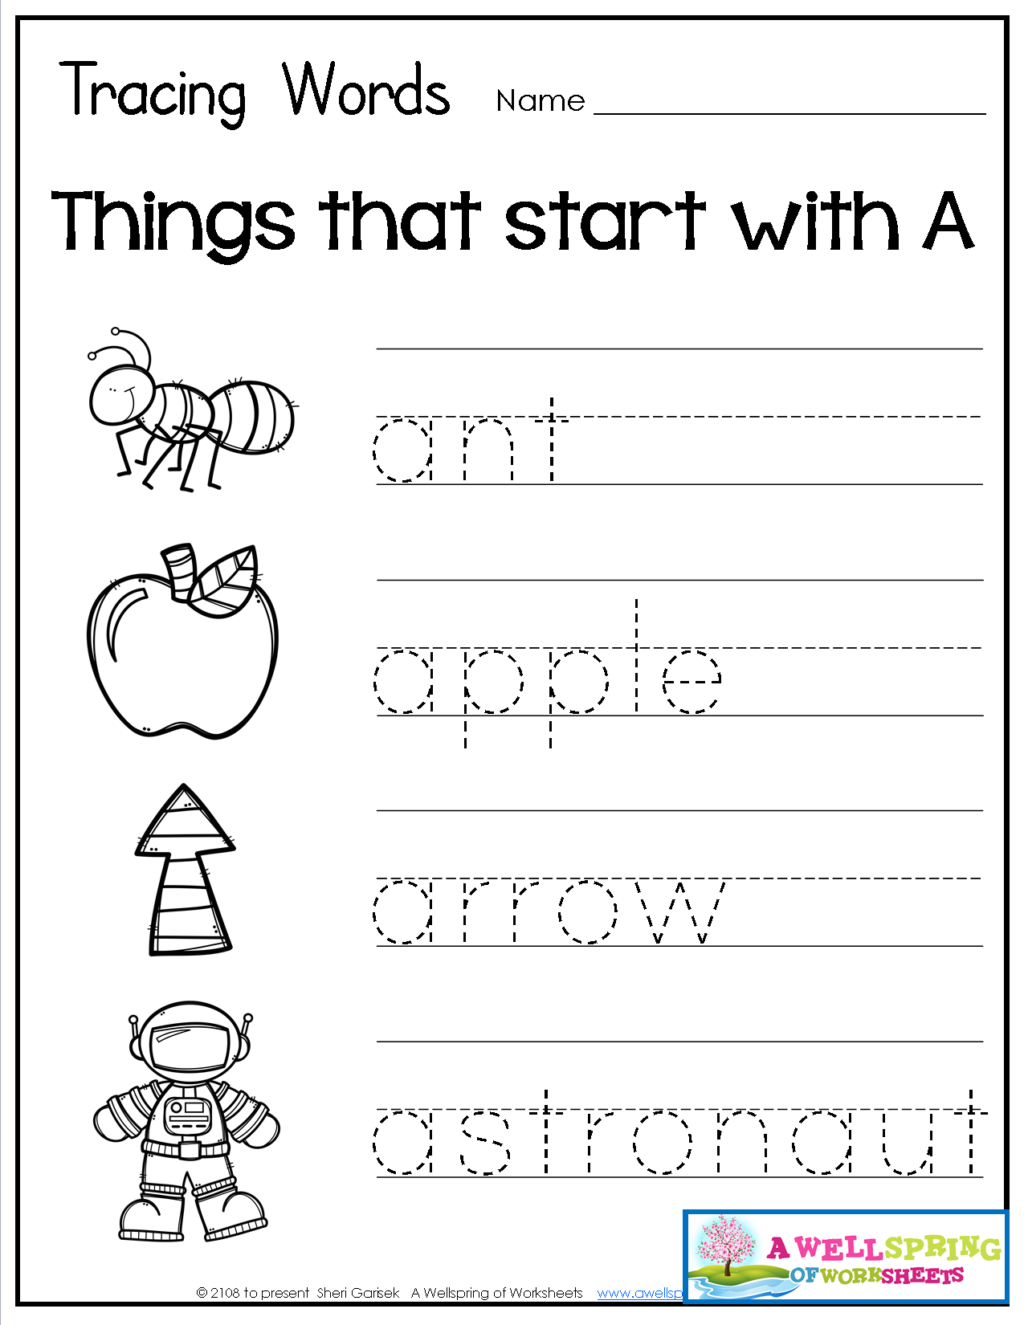 Worksheet ~ Worksheet Alphabet Tracing Worksheets Create